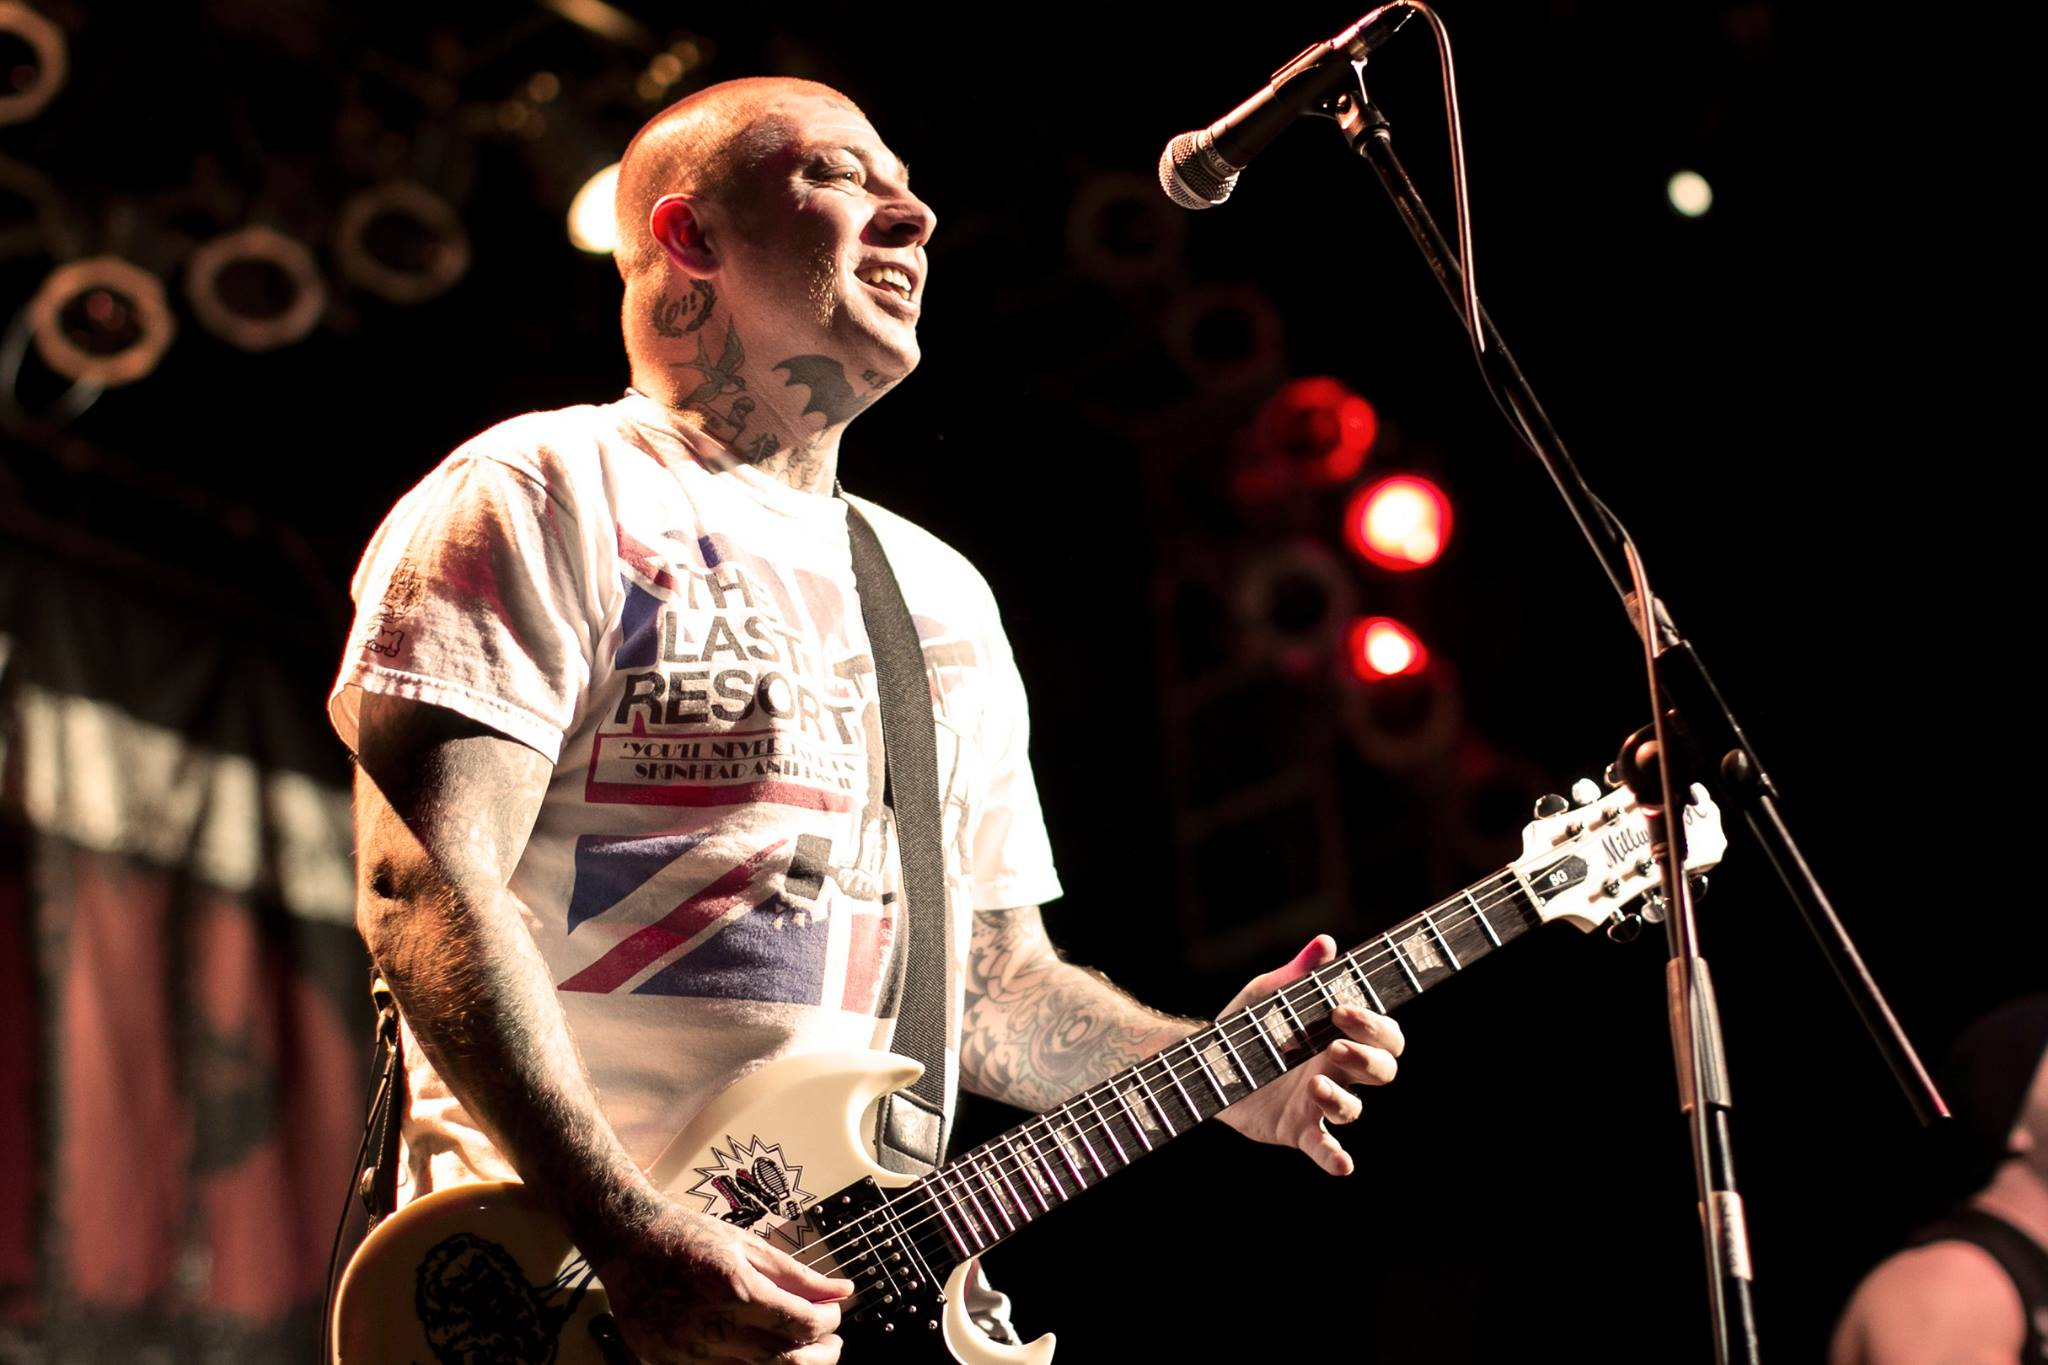 Rancid lead guitarist Lars Frederiksen performing at House of Blues Las Vegas on July 2013. Photo by Tyler Newton.